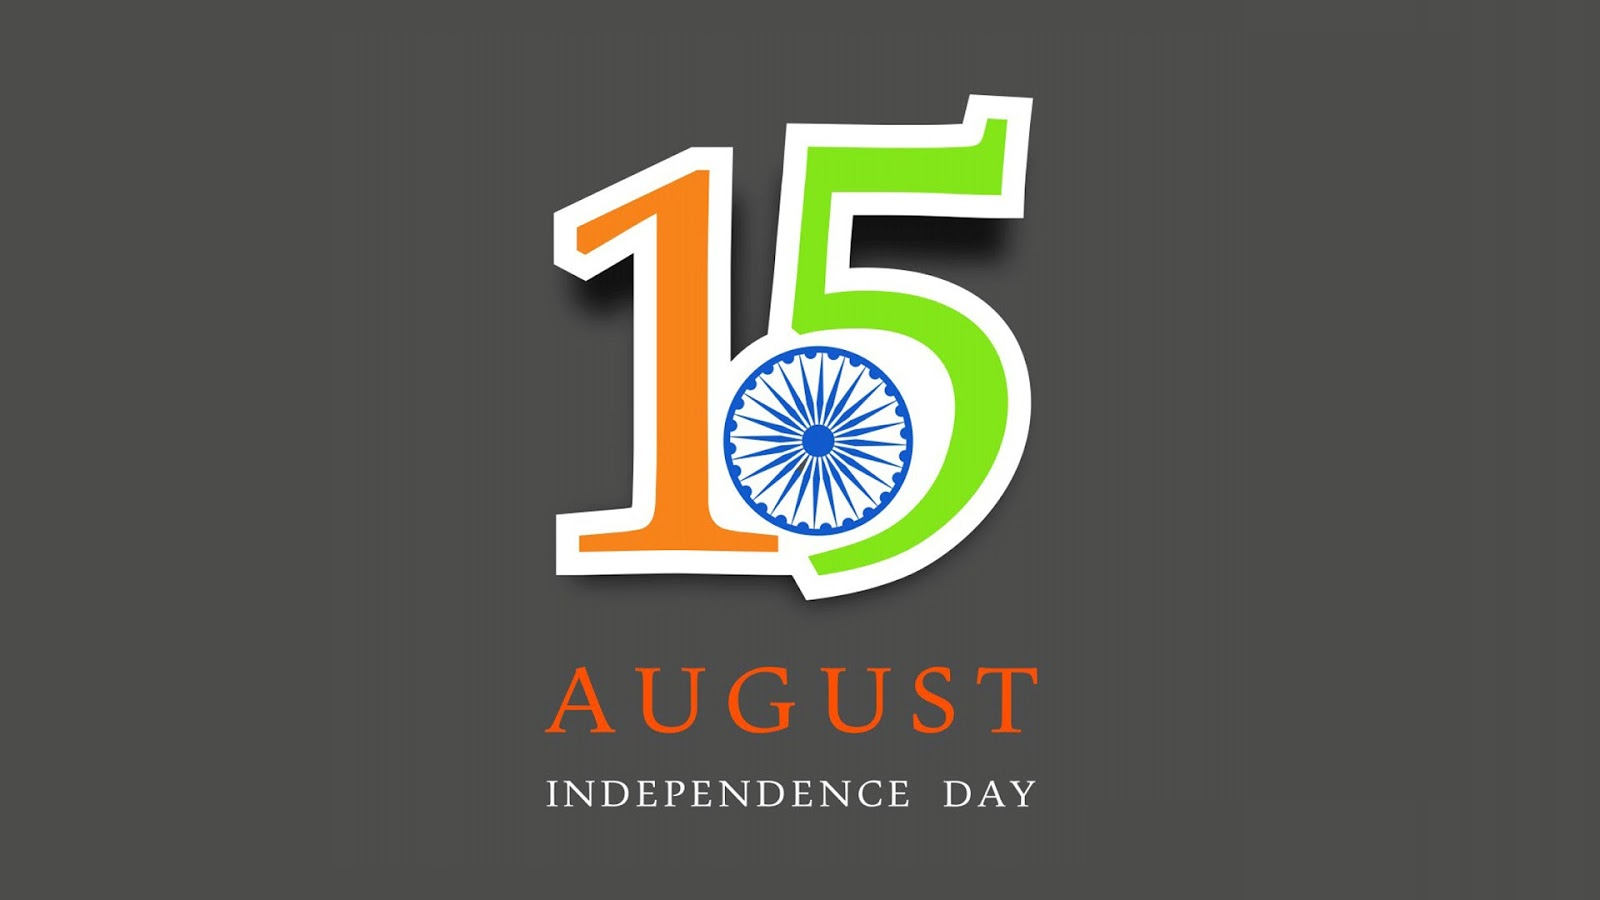 55 Independence Day Images to Download Online for Free ...